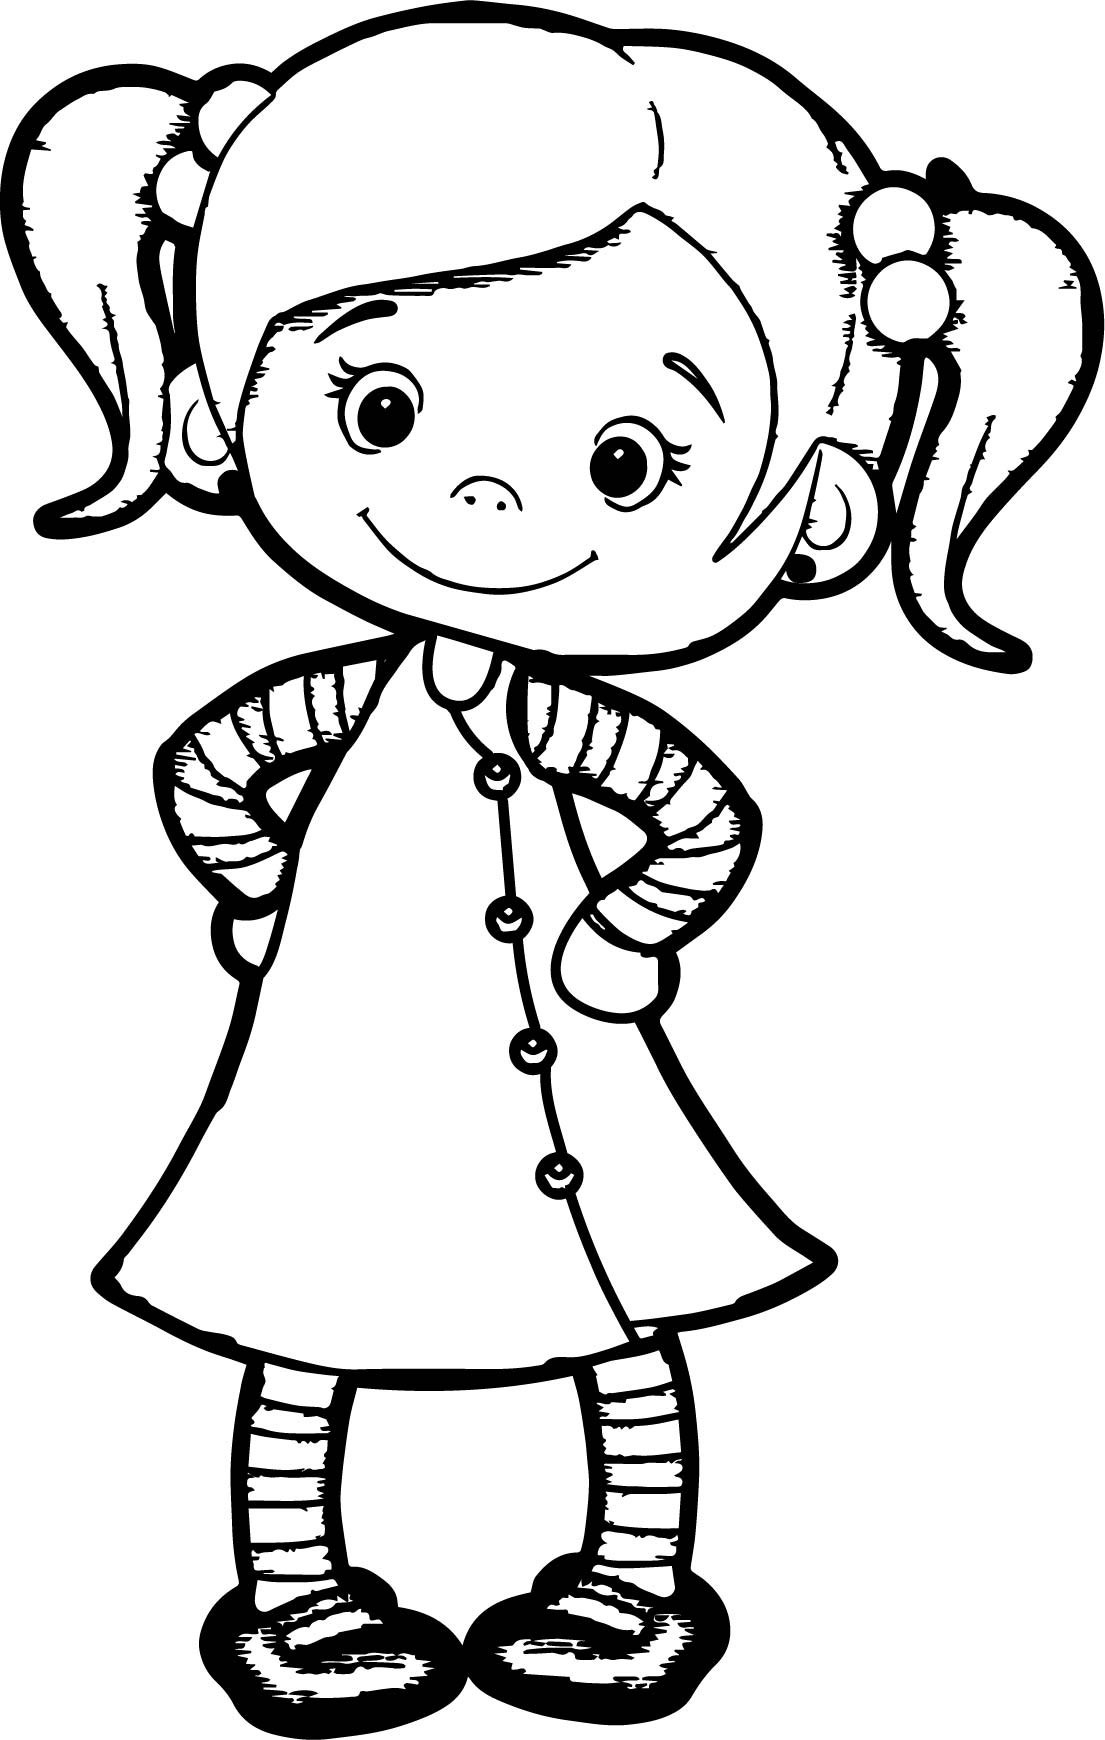 Printable Coloring Pages For Girls Printable Coloring Pages For Kids Fashion Coloring Pages Fashionable